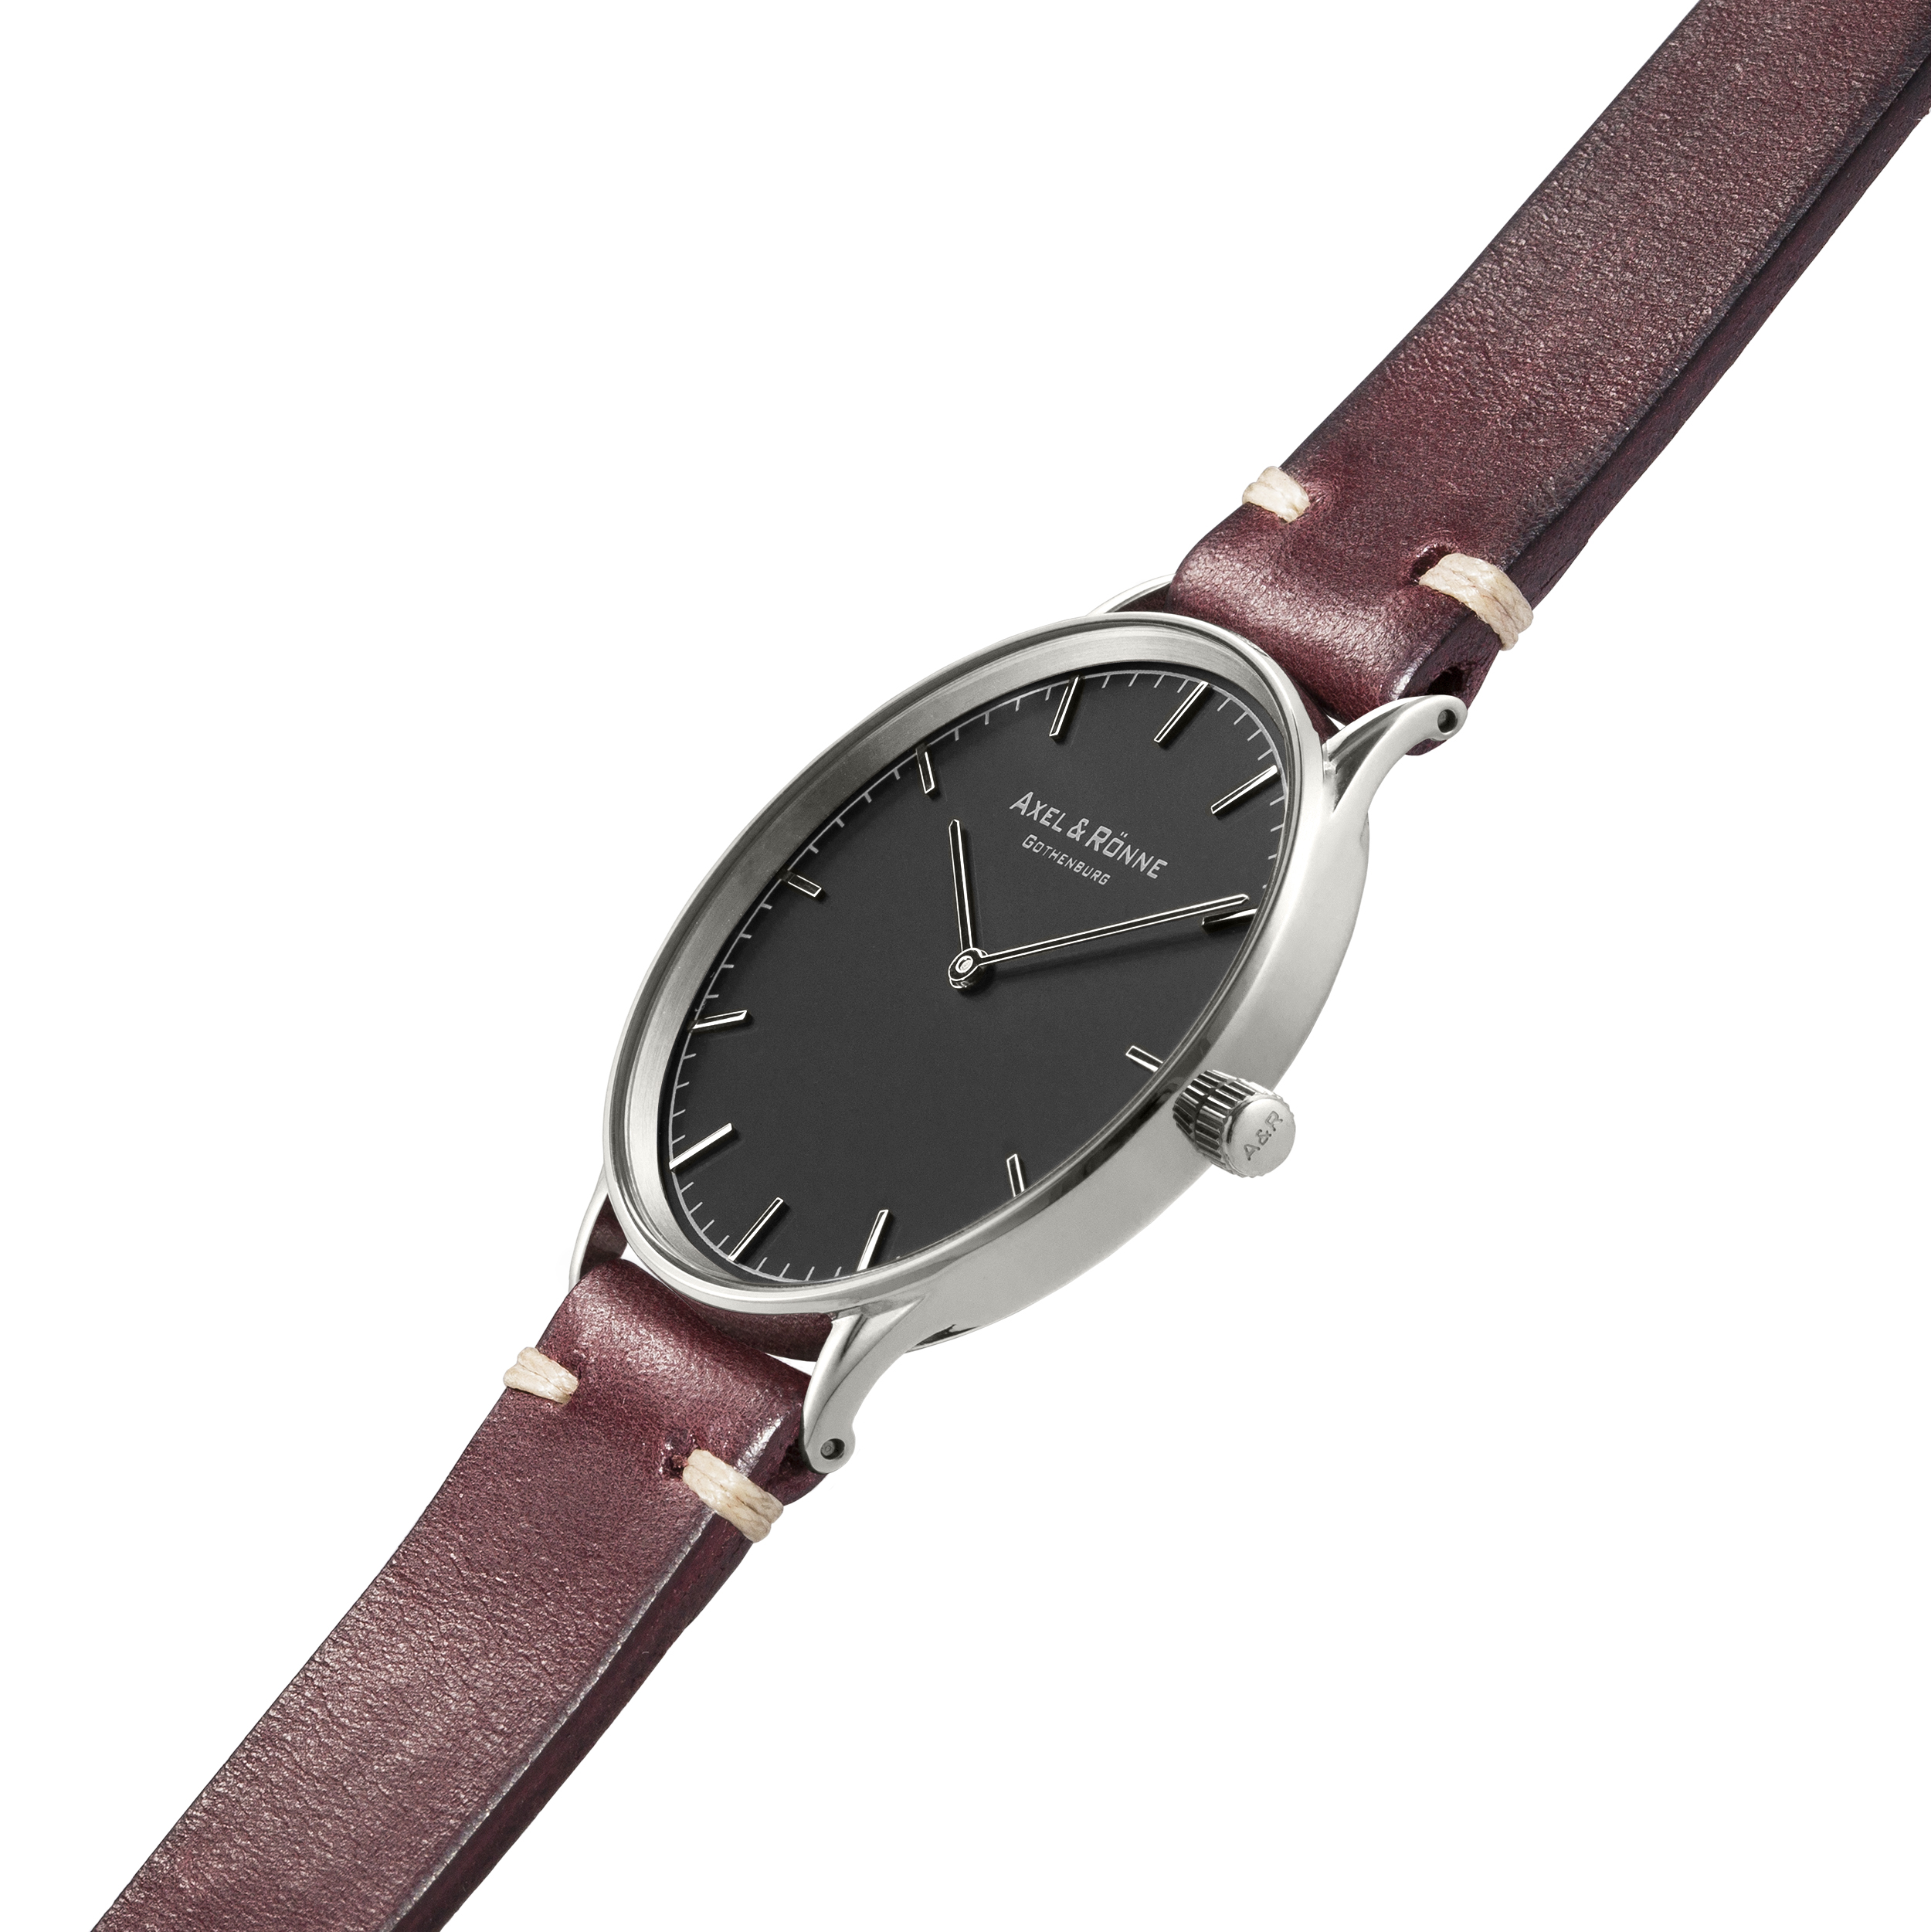 Polished Steel/ Burgundy Italian Leather Straps.  View Item here.